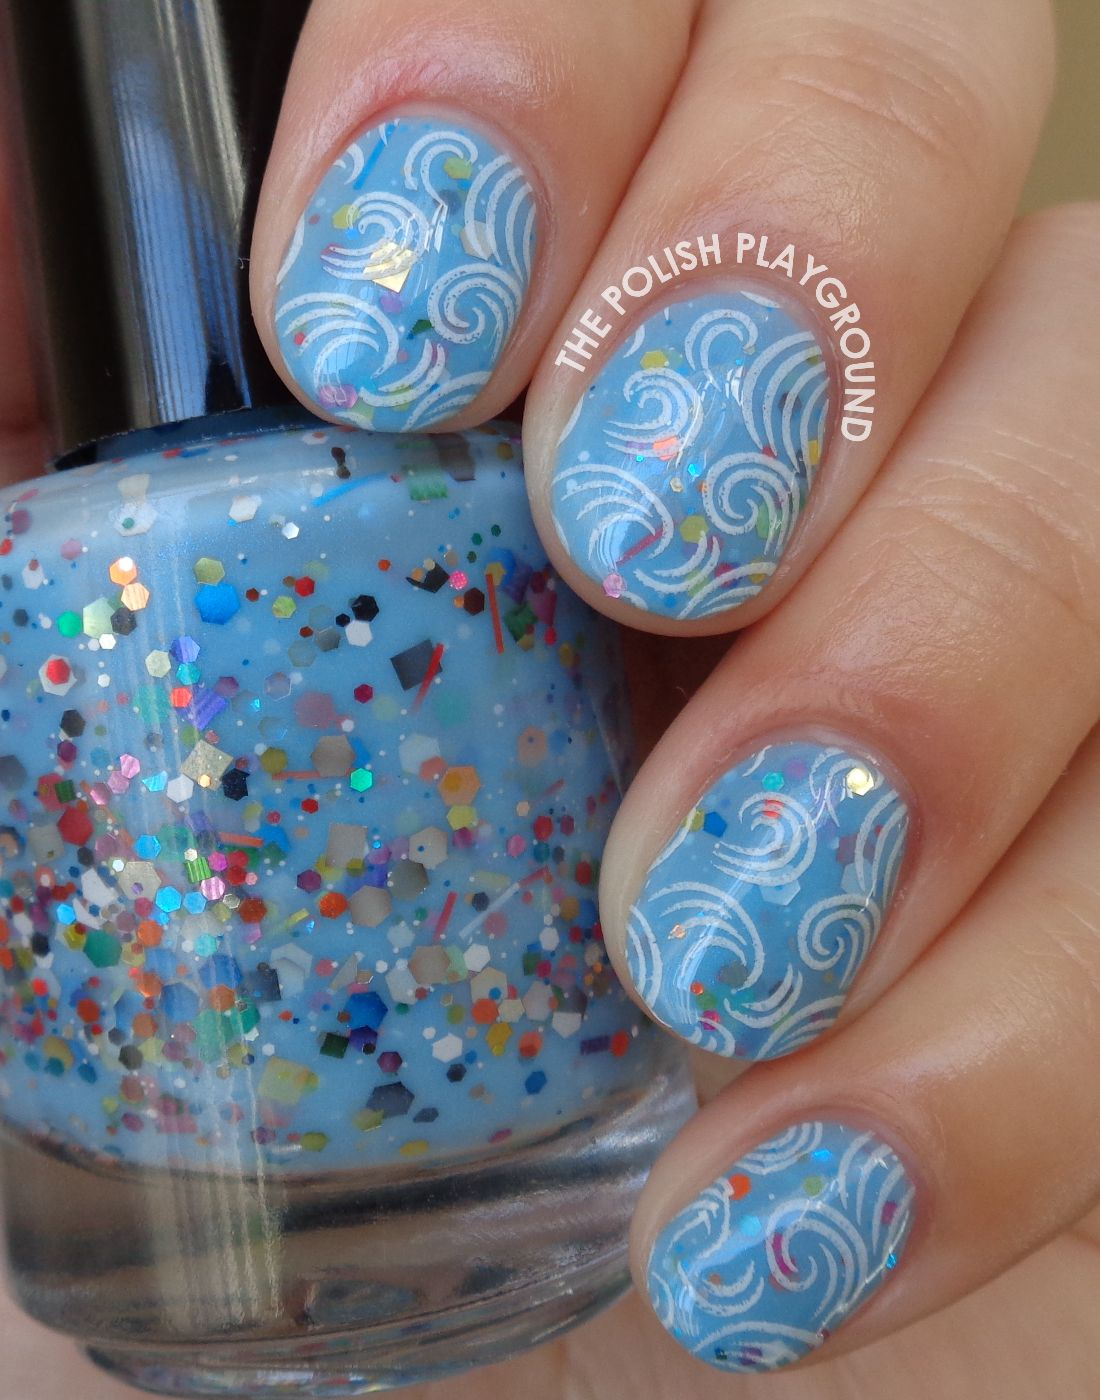 Blue Glitter Crelly with Swirly Waves Stamping Nail Art